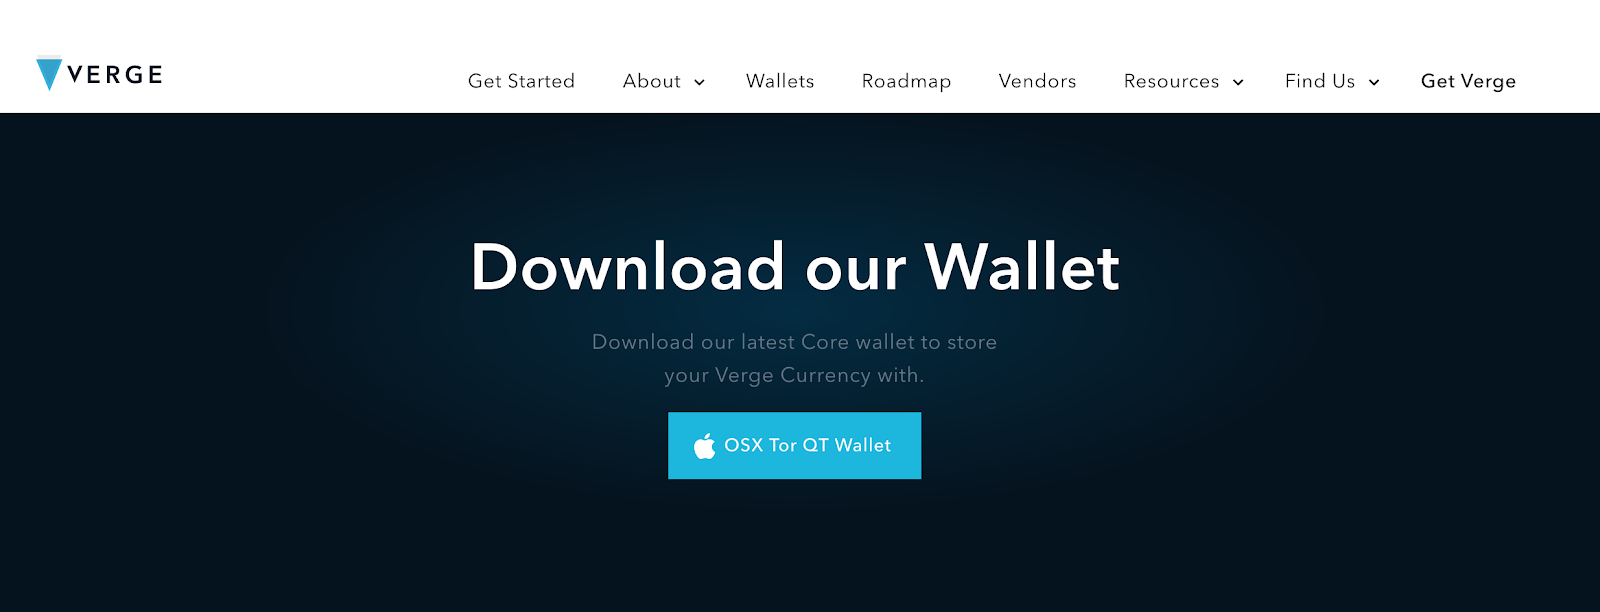 verge wallets